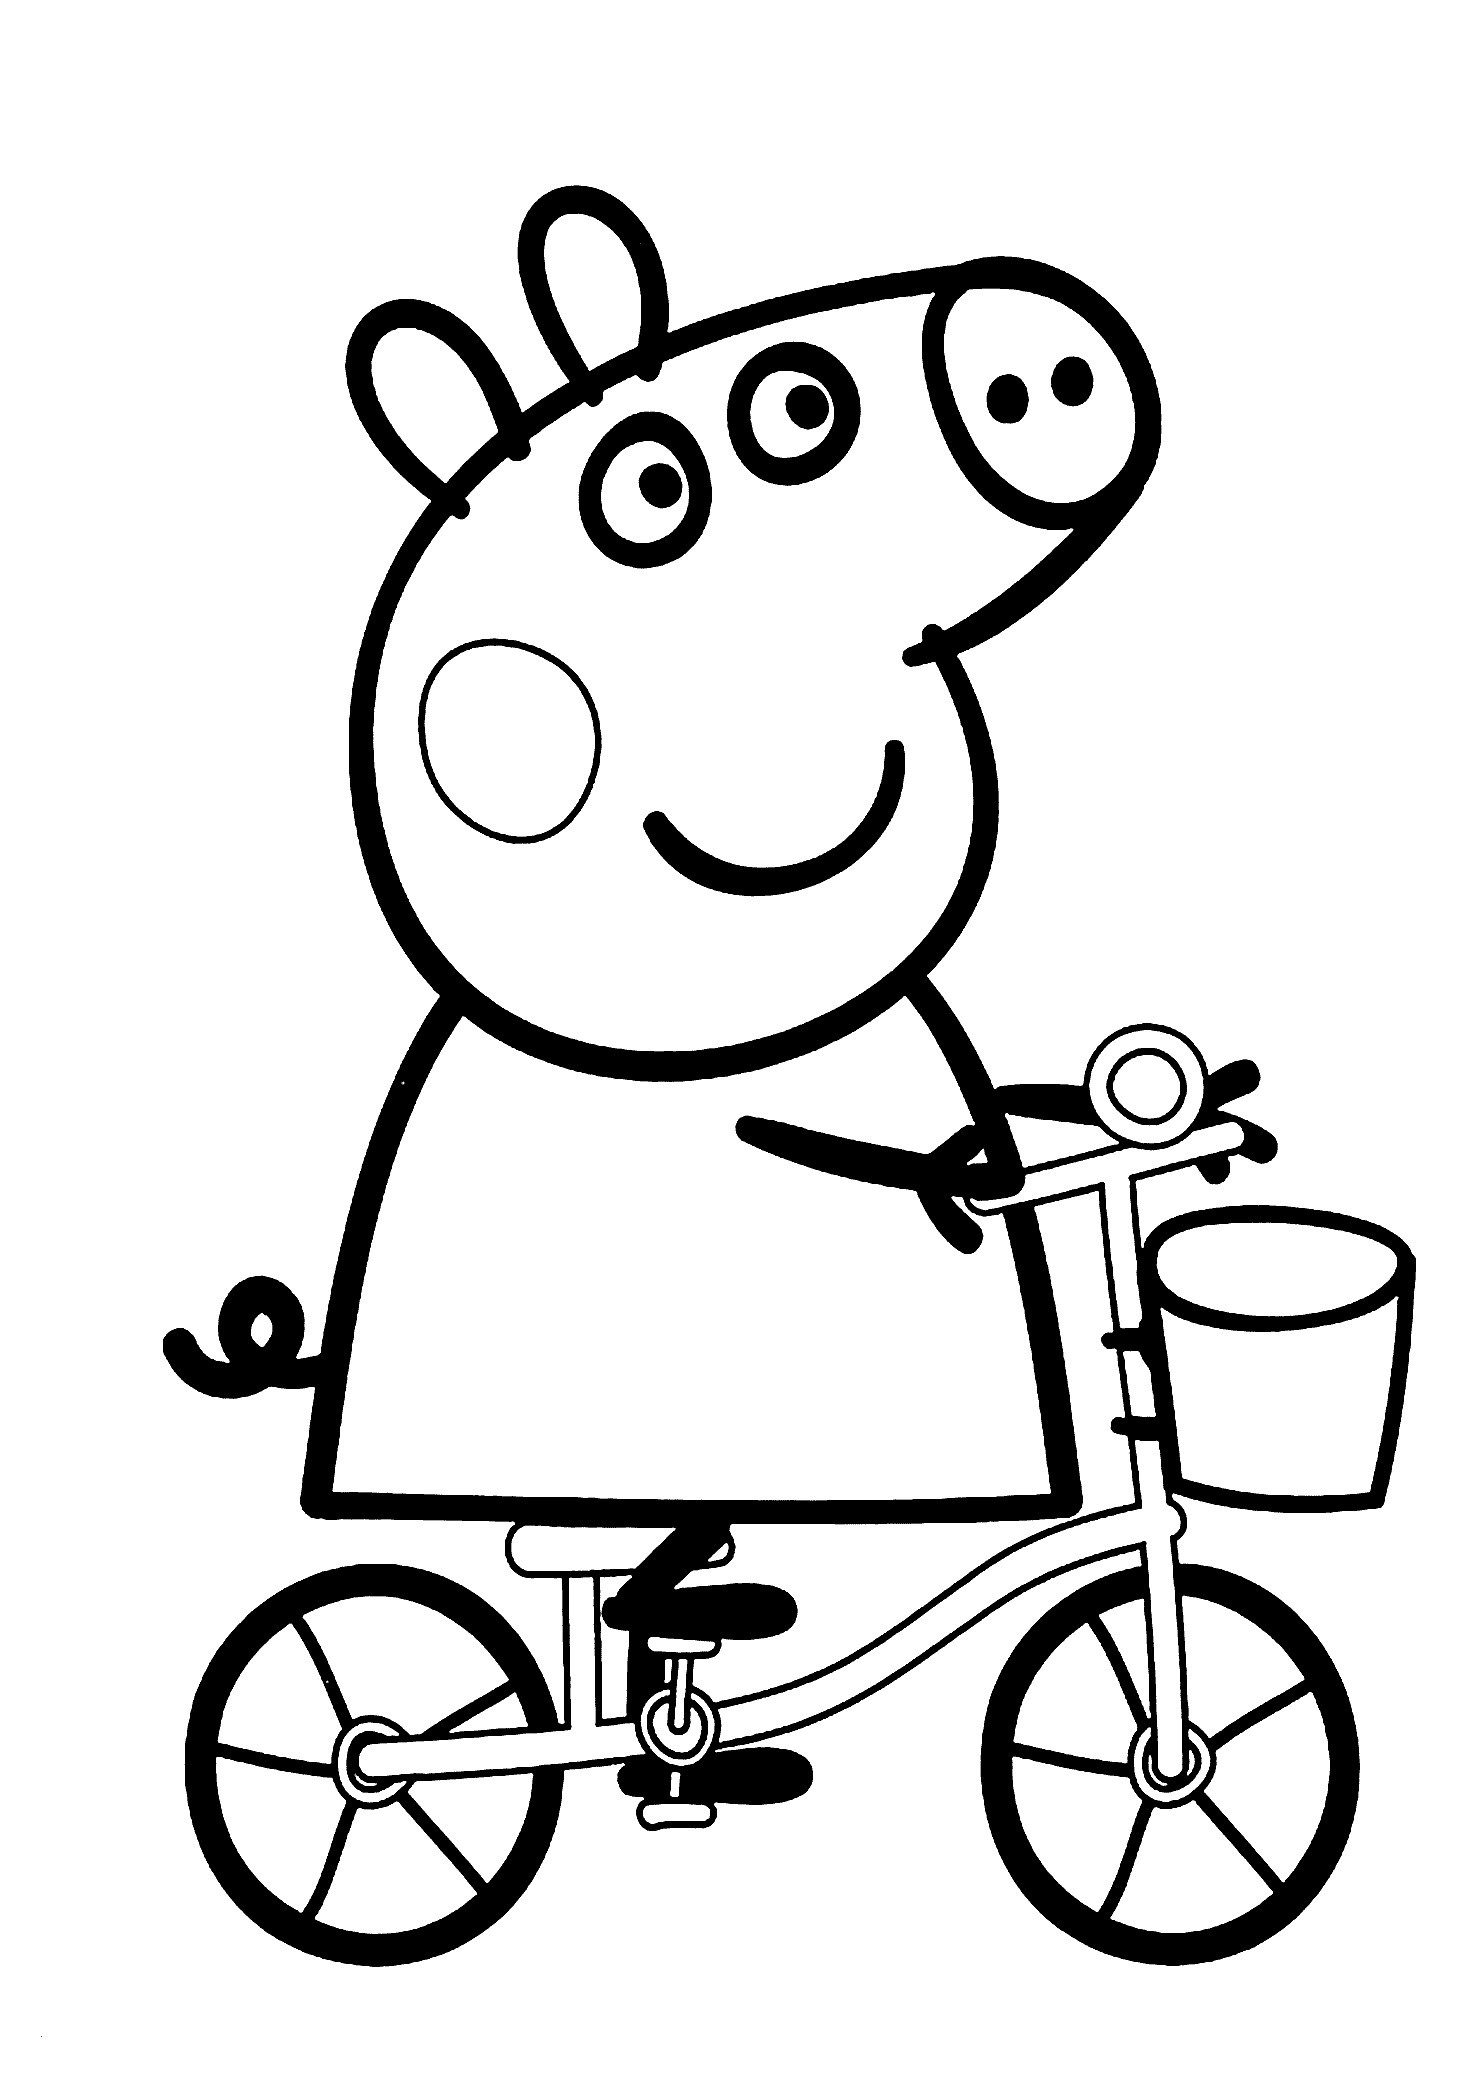 Peppa Pig Ausmalbilder Inspirierend Peppa Pig Coloring Unique Collection Peppa Pig Movie Coloring Book Sammlung